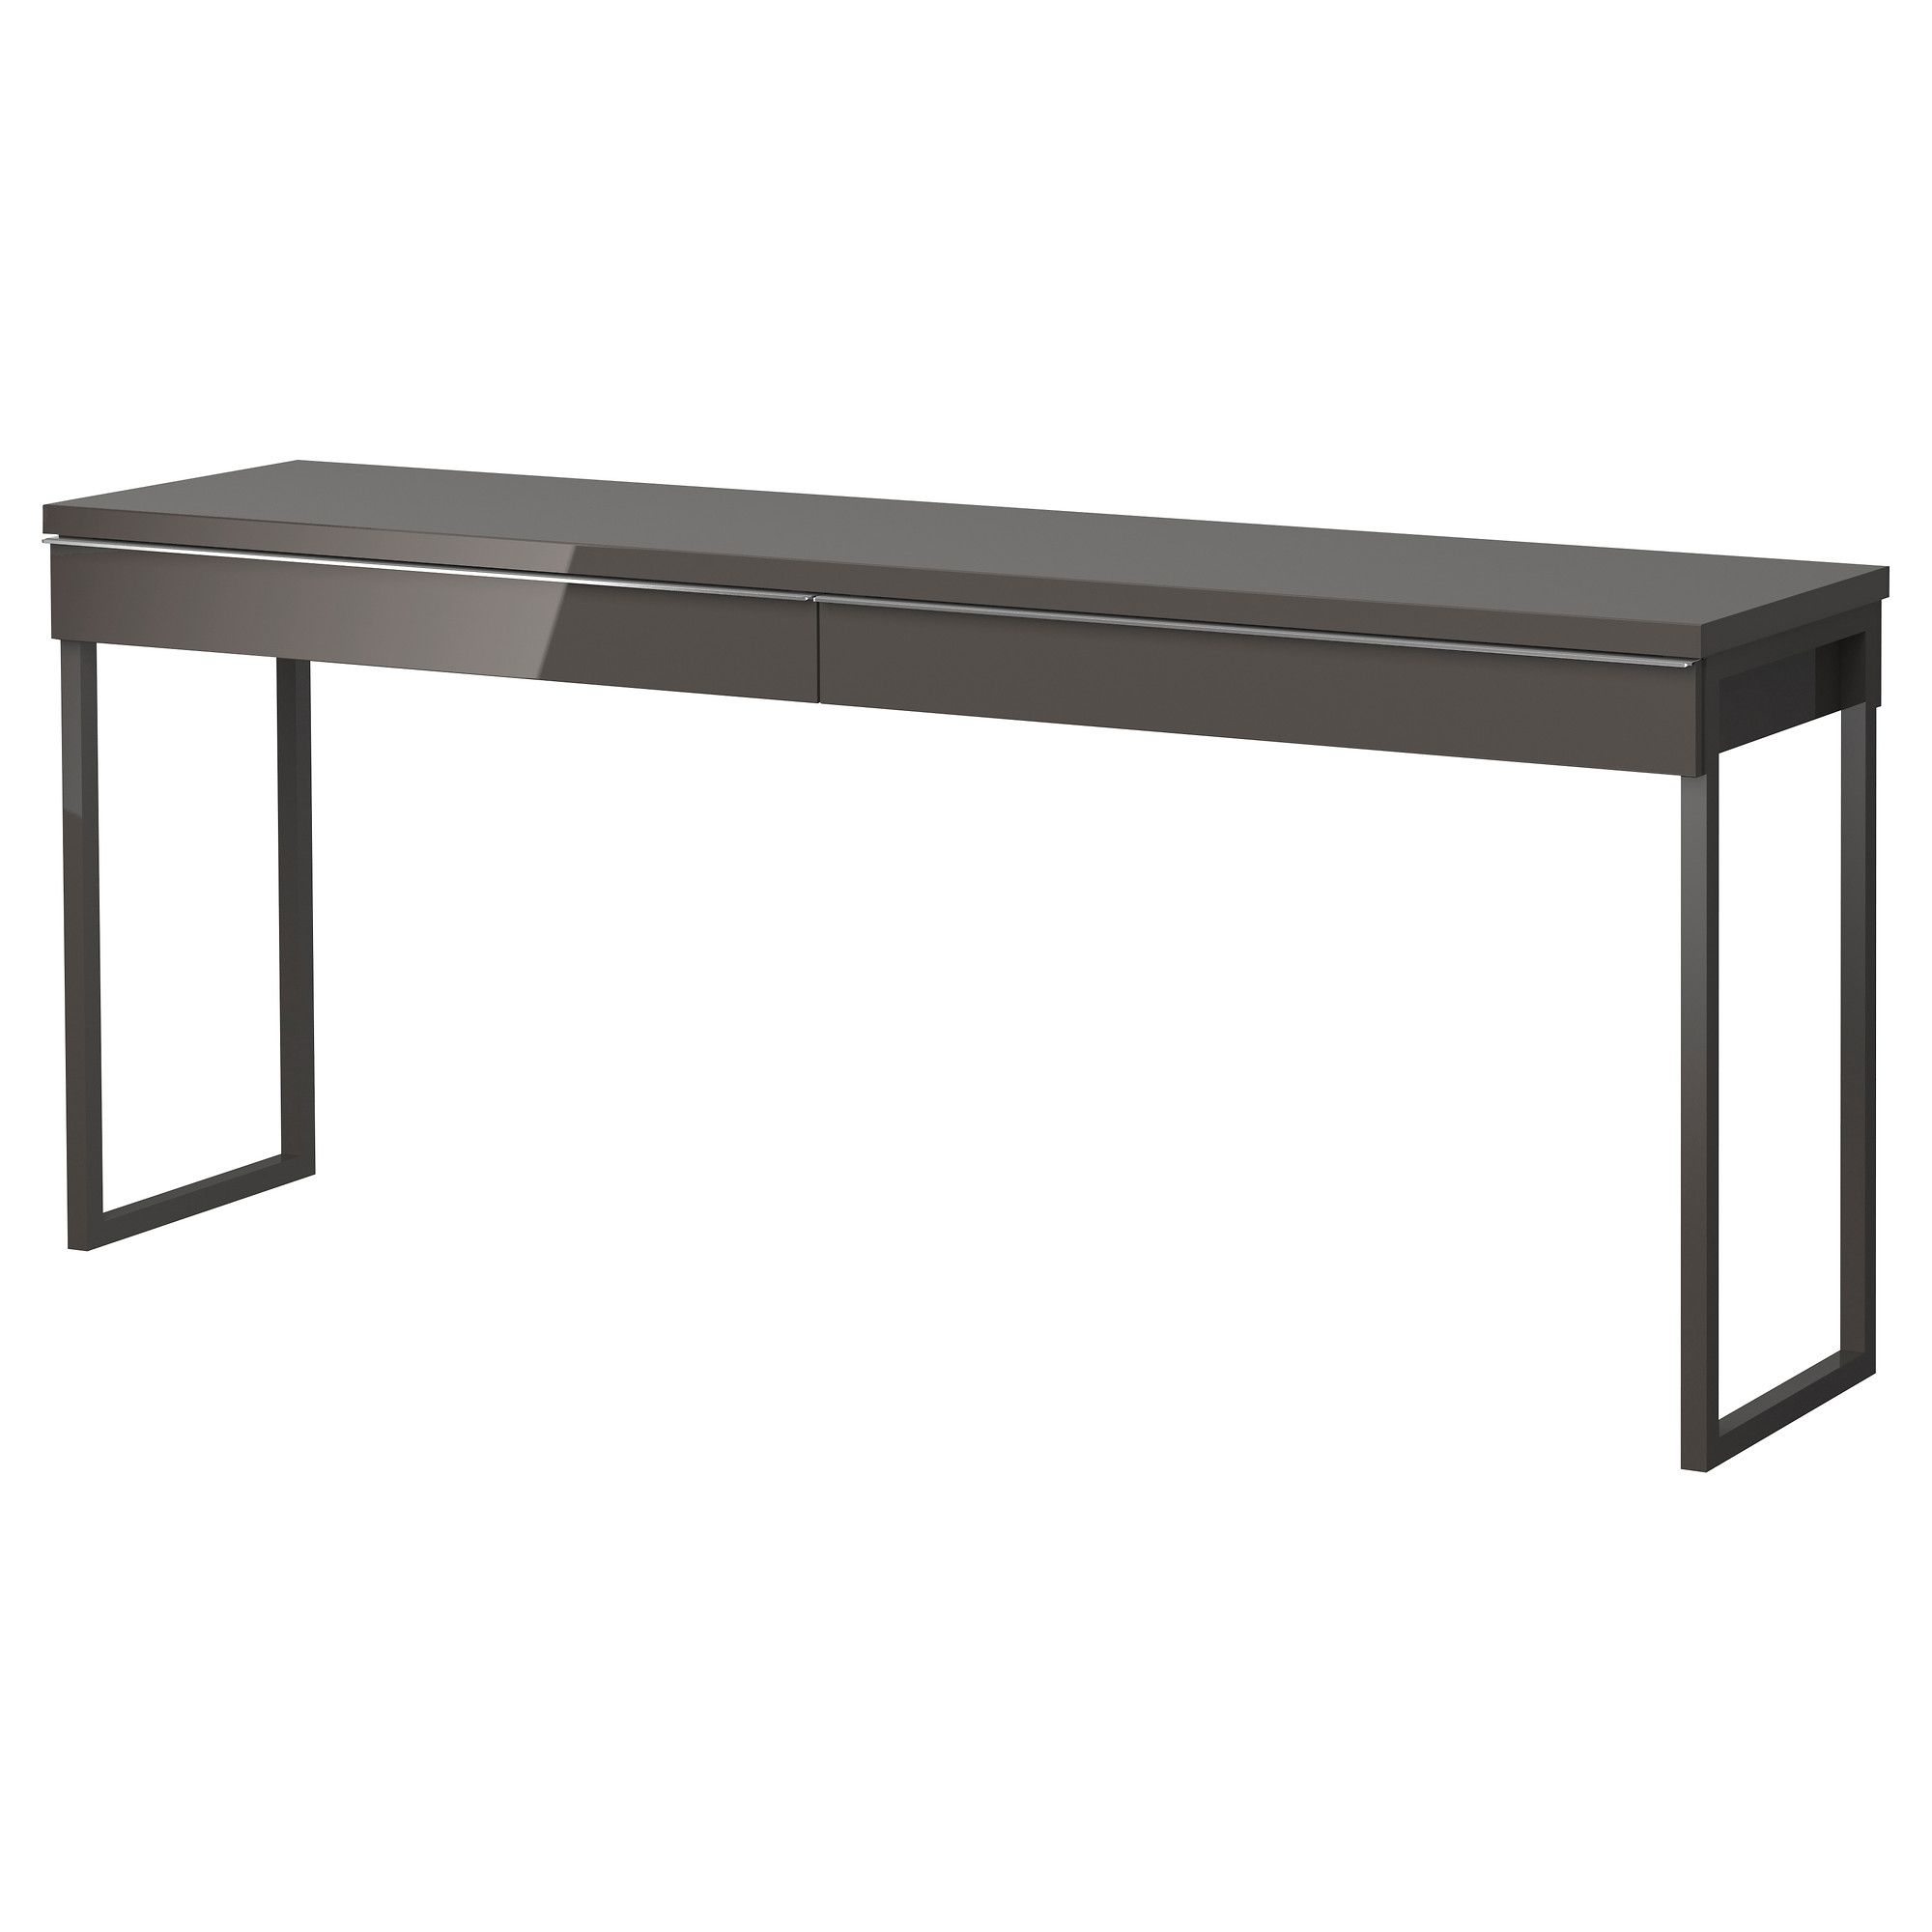 BEST… BURS Desk high gloss gray IKEA BEST… BURS Desk IKEA Two